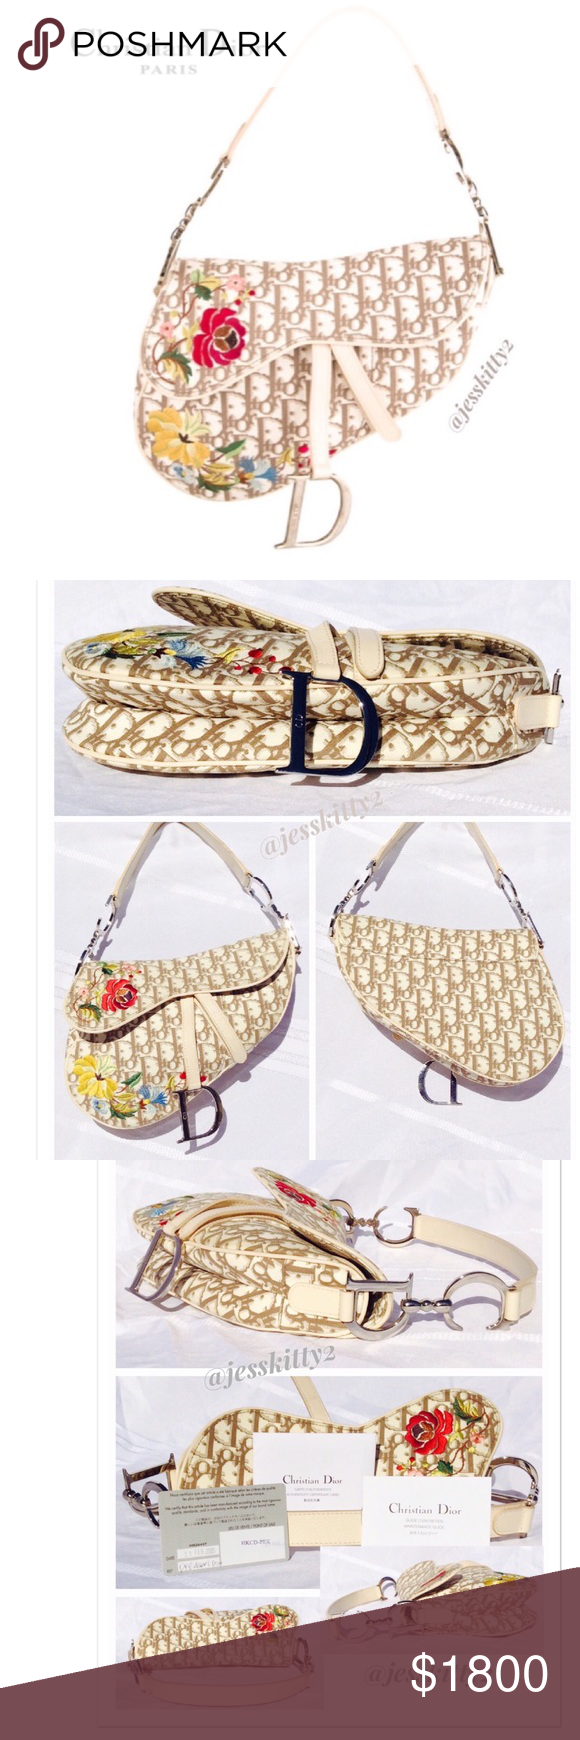 c2e056c1b9 VINTAGE RARE CHRISTIAN DIOR Floral Saddle Bag Cream monogram canvas saddle  bag with floral